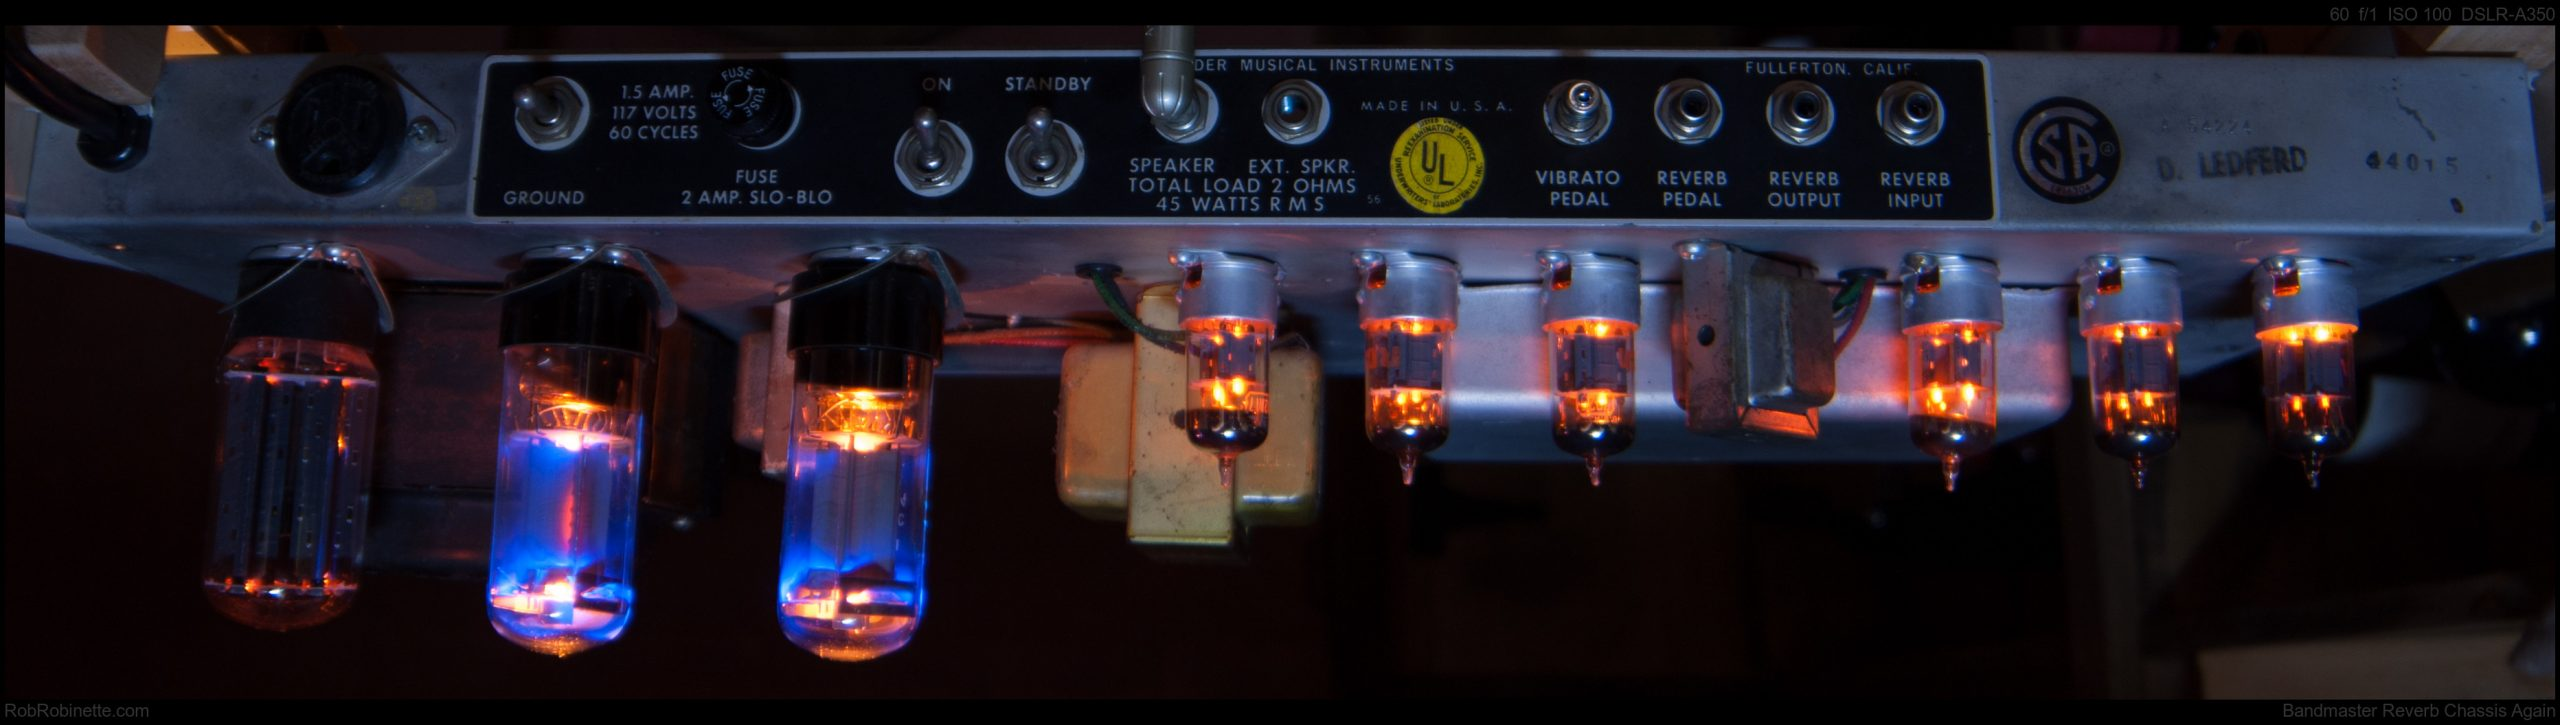 Tube amps in a reverb